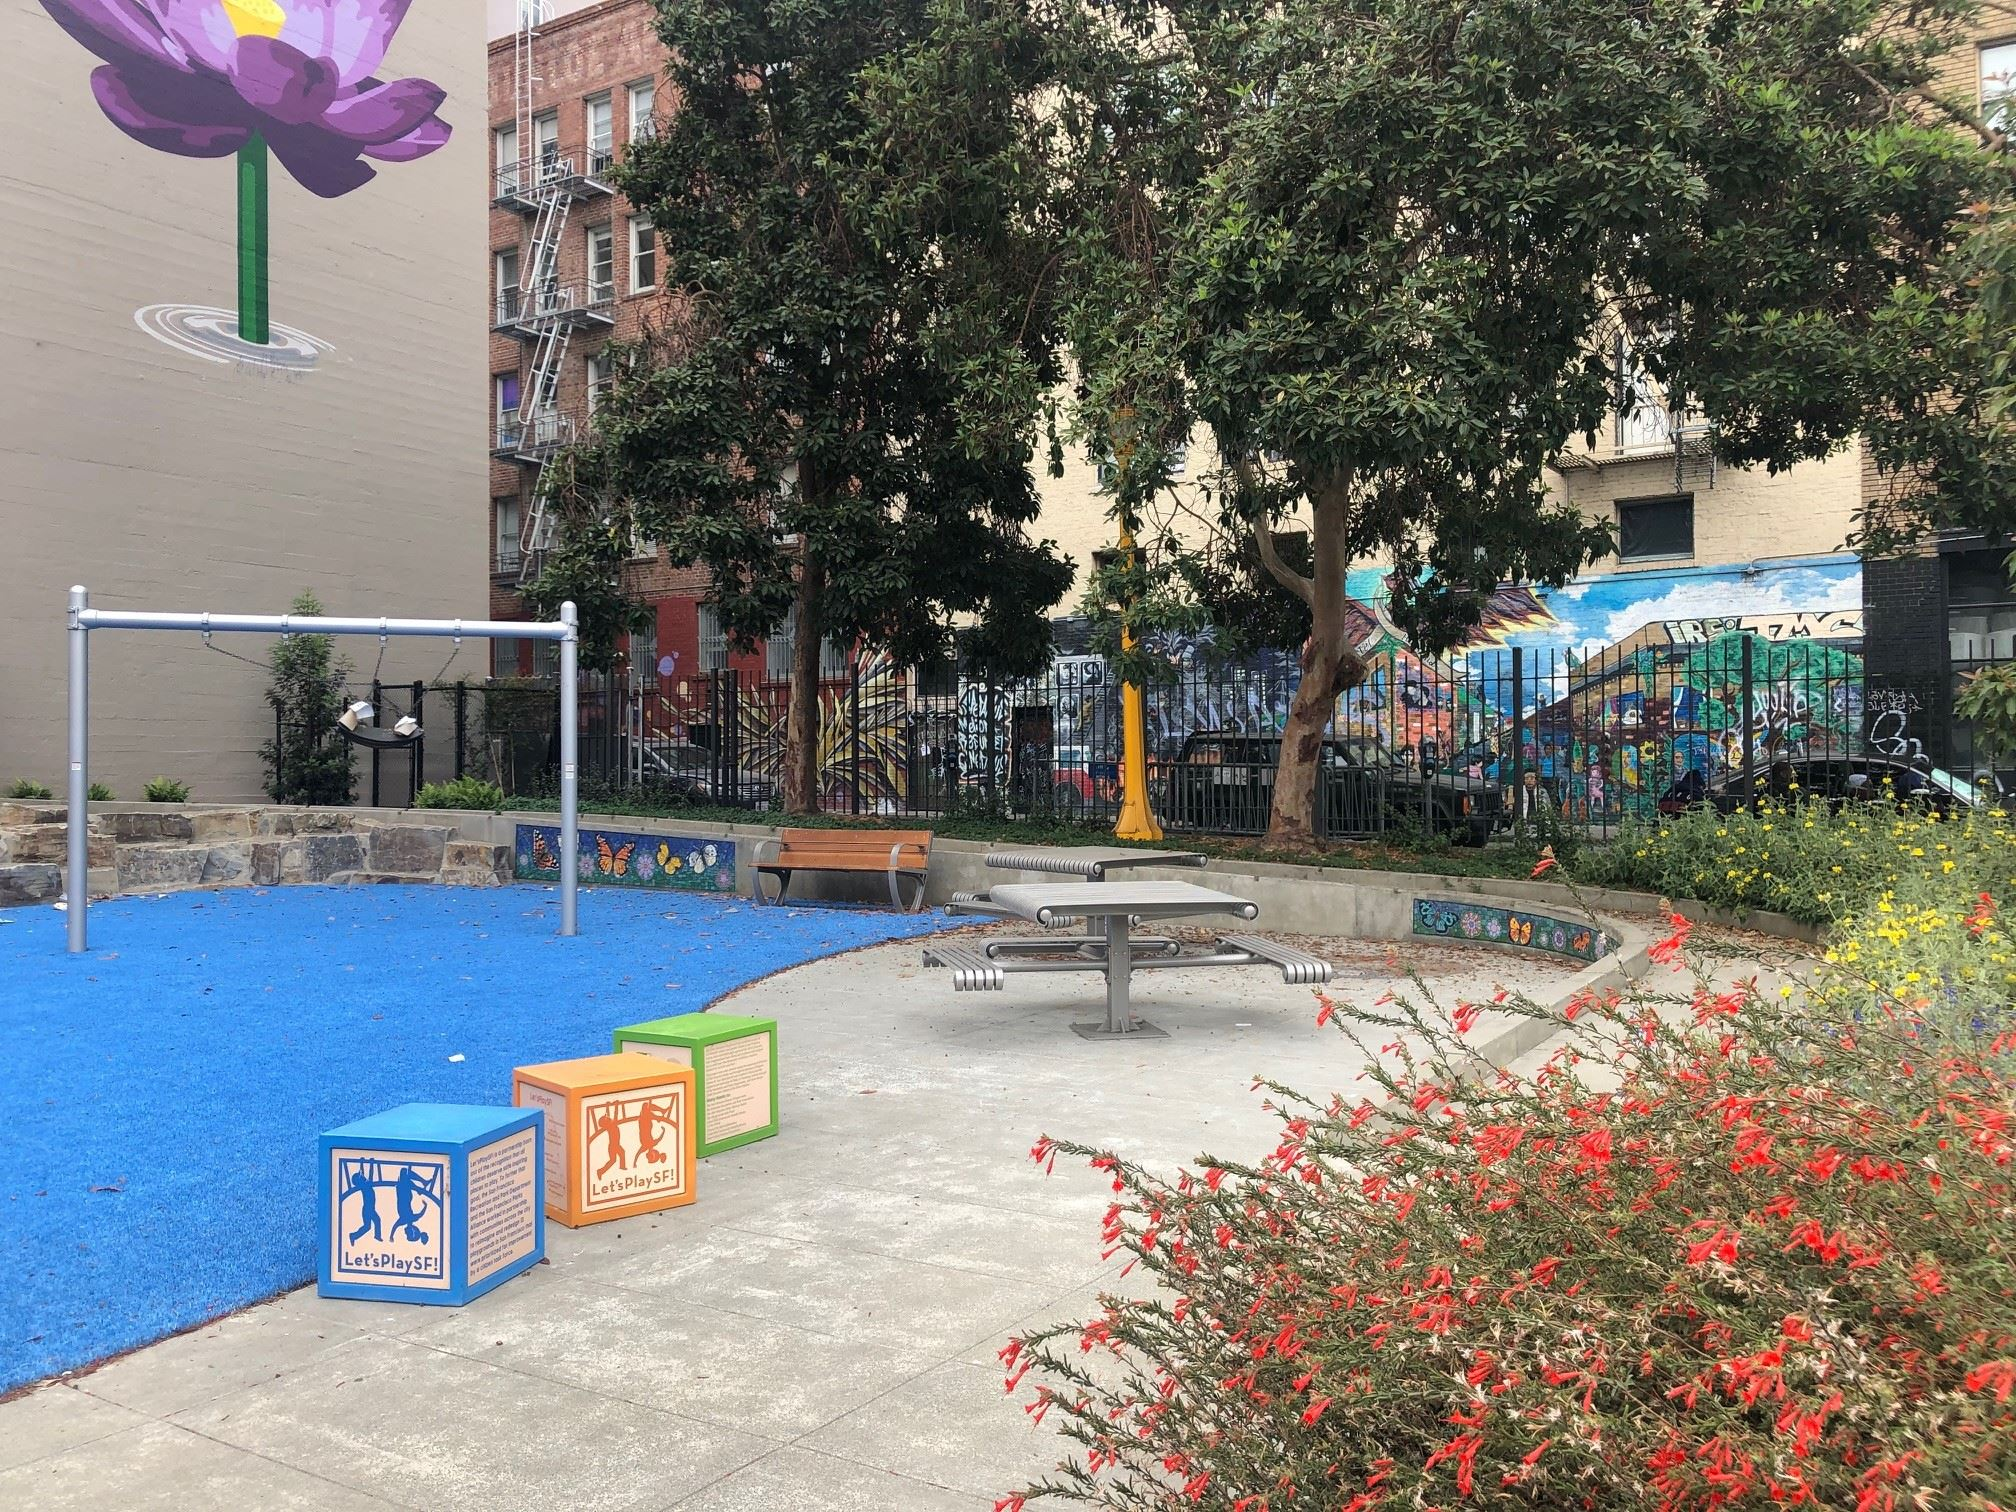 Blue play surface, metal posts with swing, purple flower painted on building, play blocks